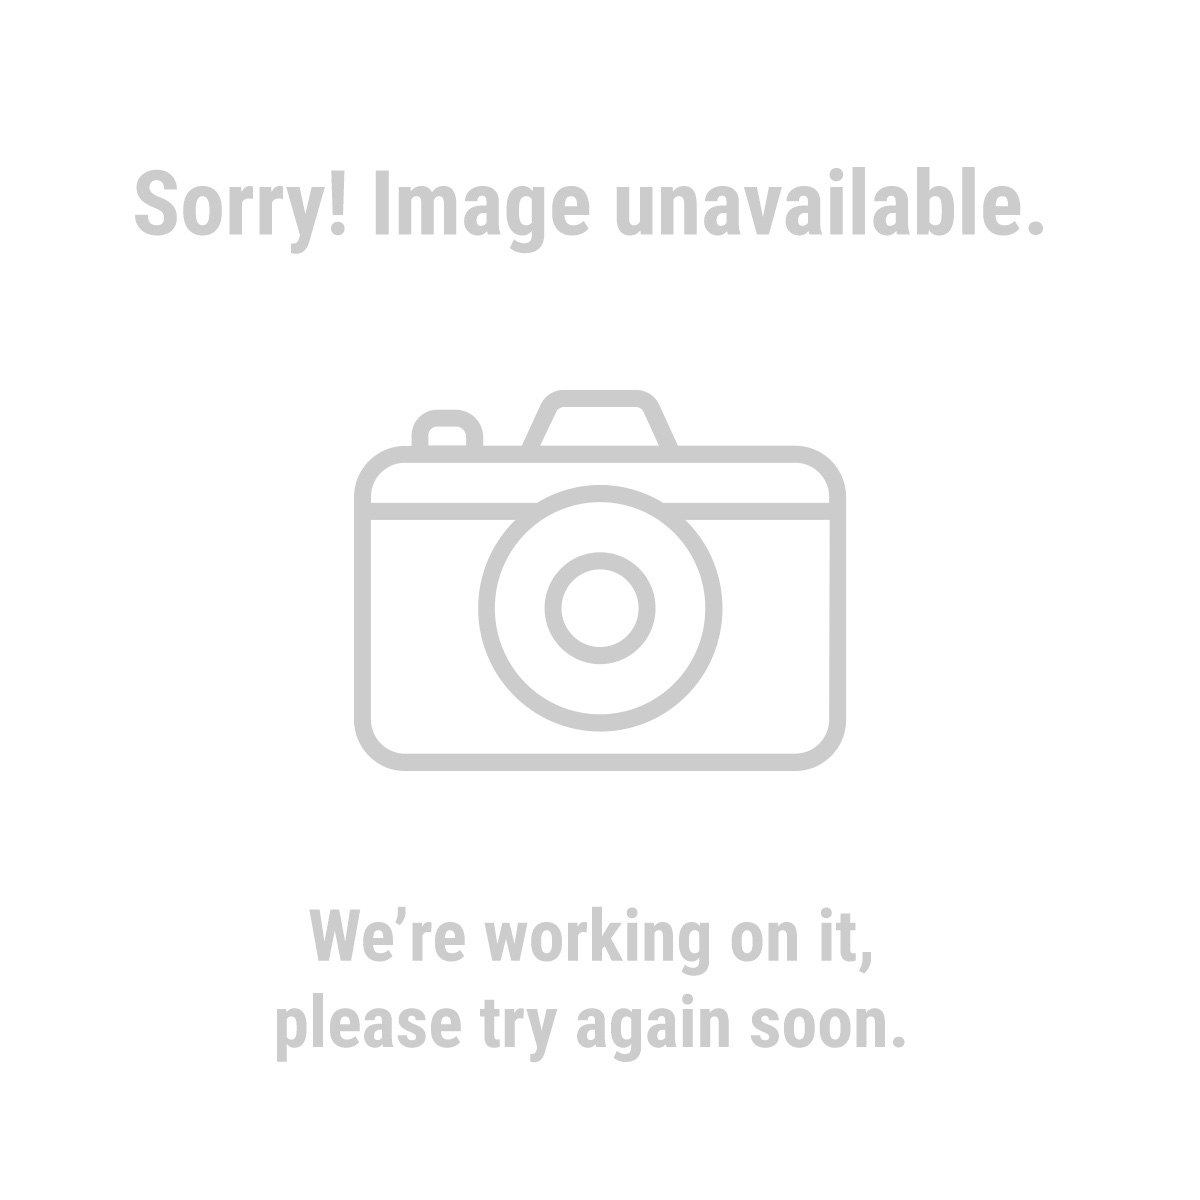 Pittsburgh 94680 13 Piece SAE Ball End Hex Key Set